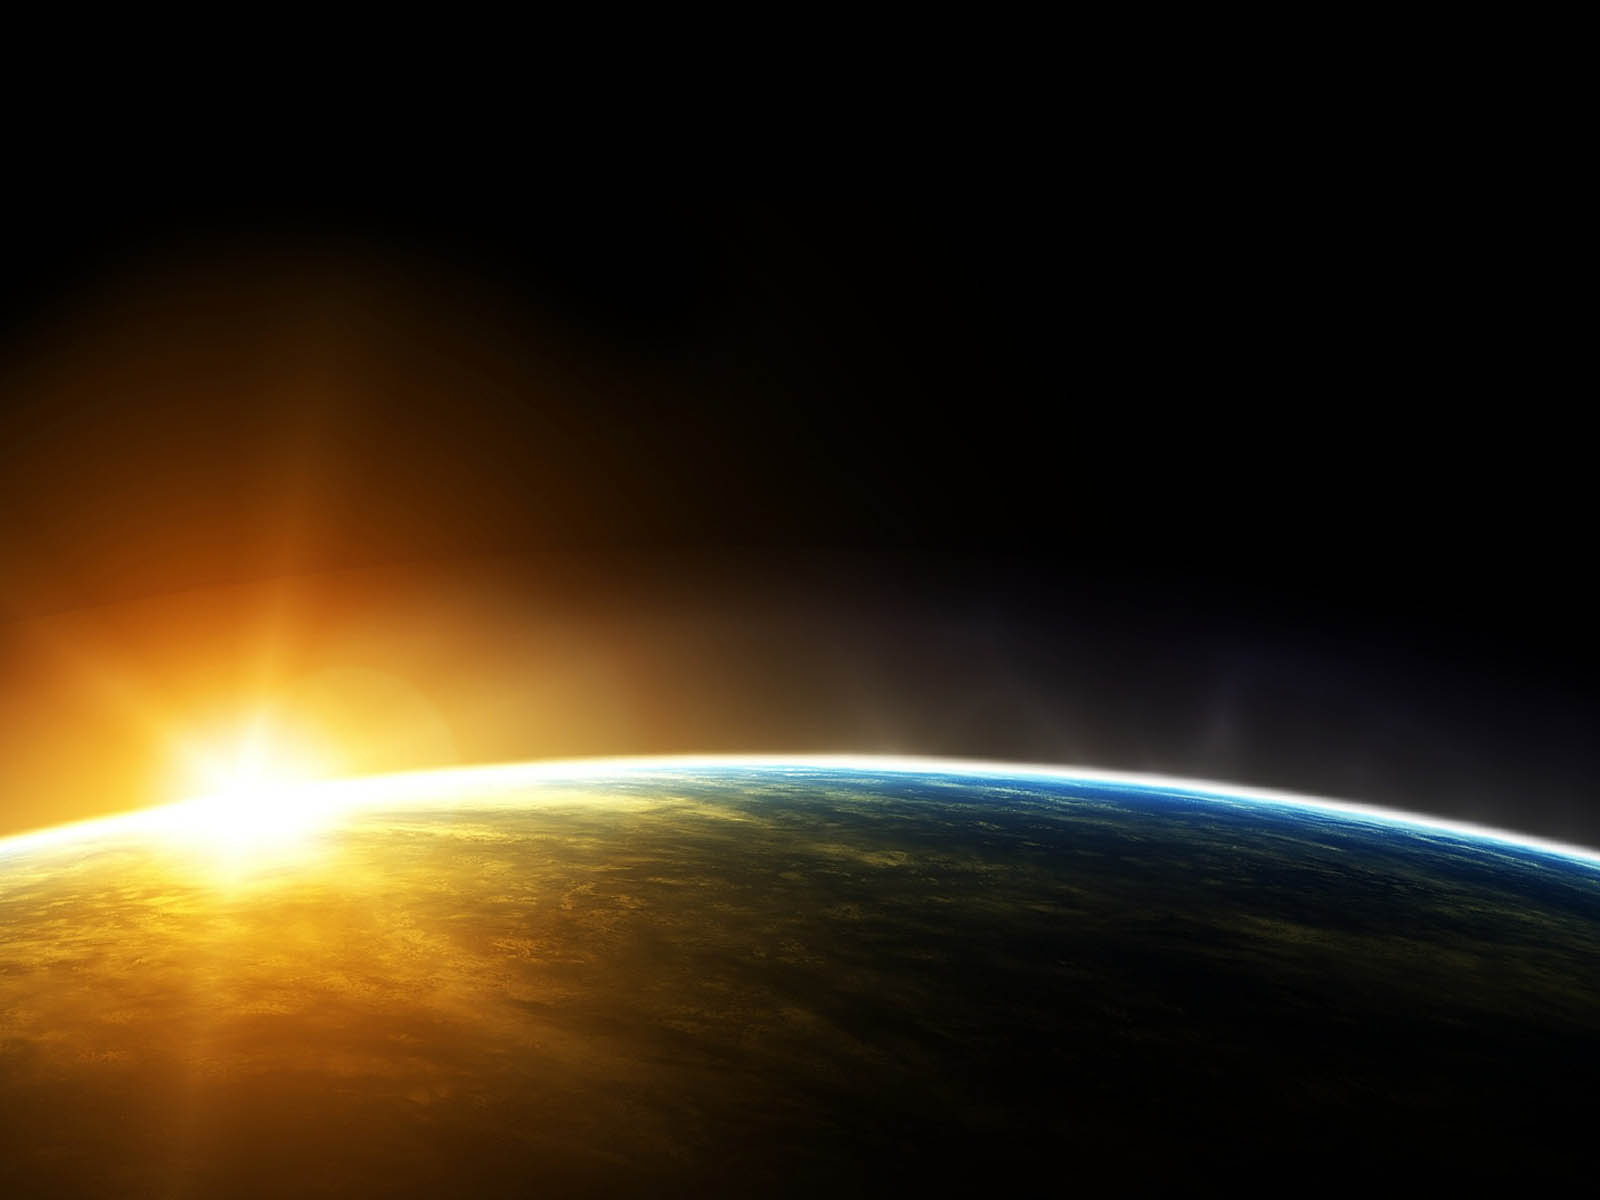 Sunrise In Space Wallpapers Images Photos Pictures and Backgrounds 1600x1200